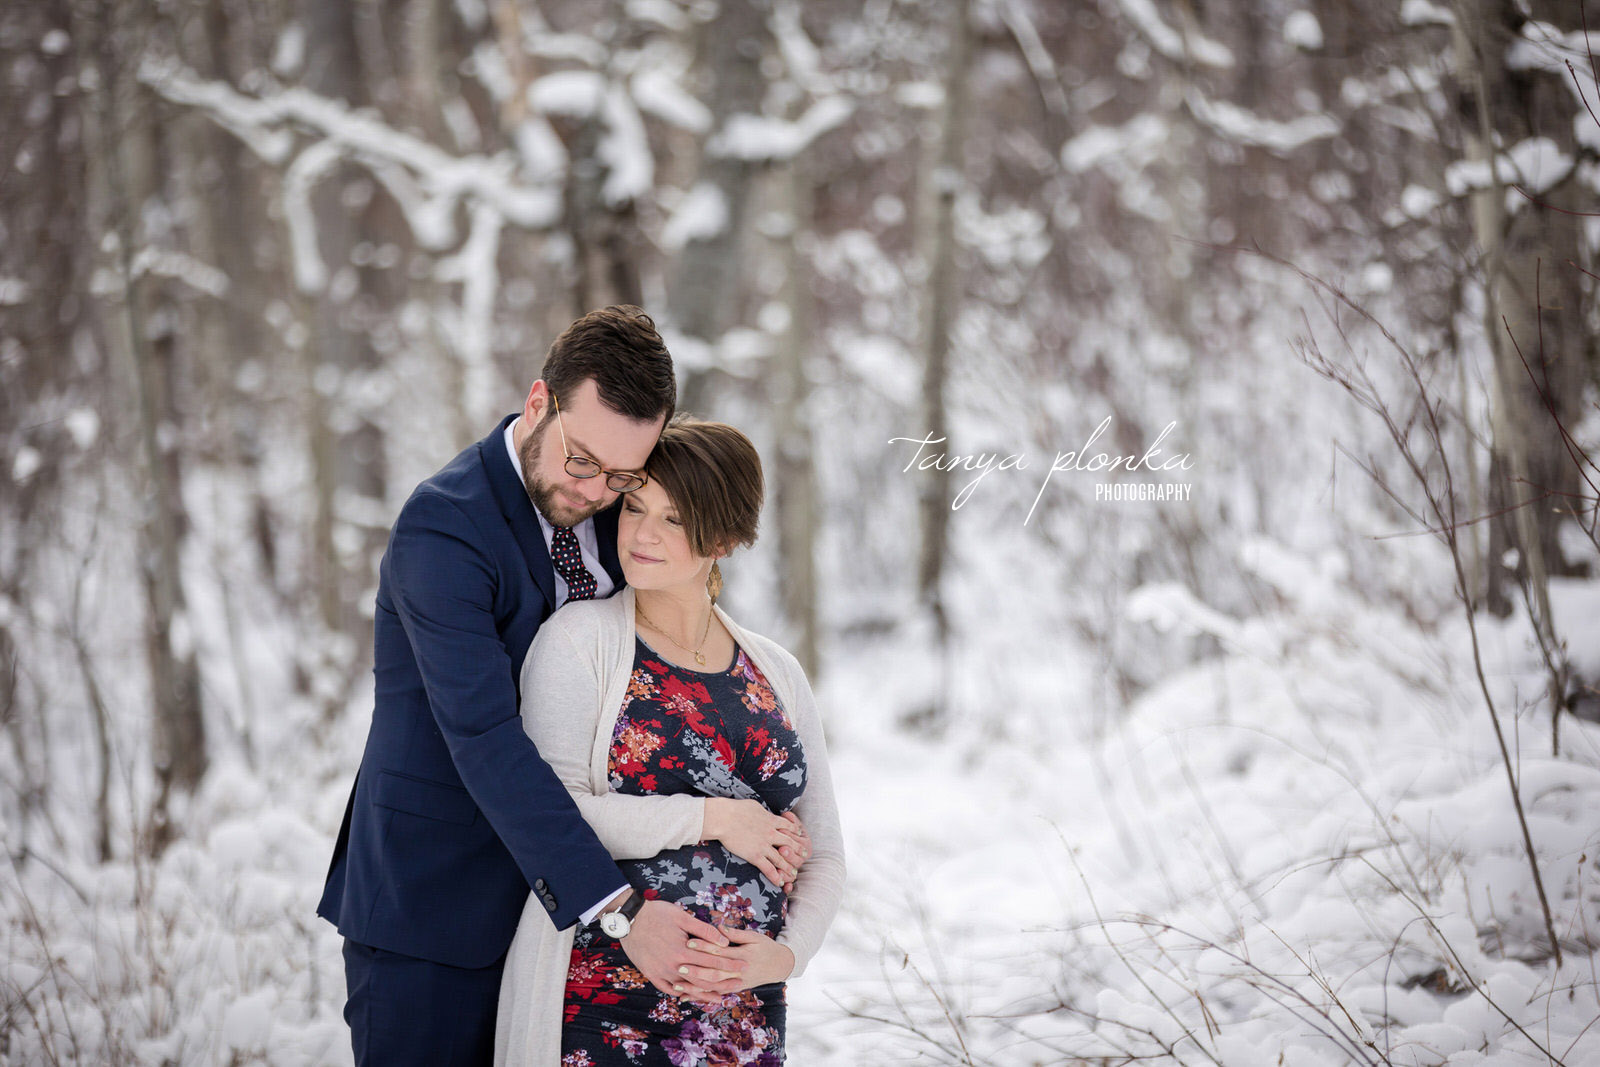 Waterton winter snow maternity photos